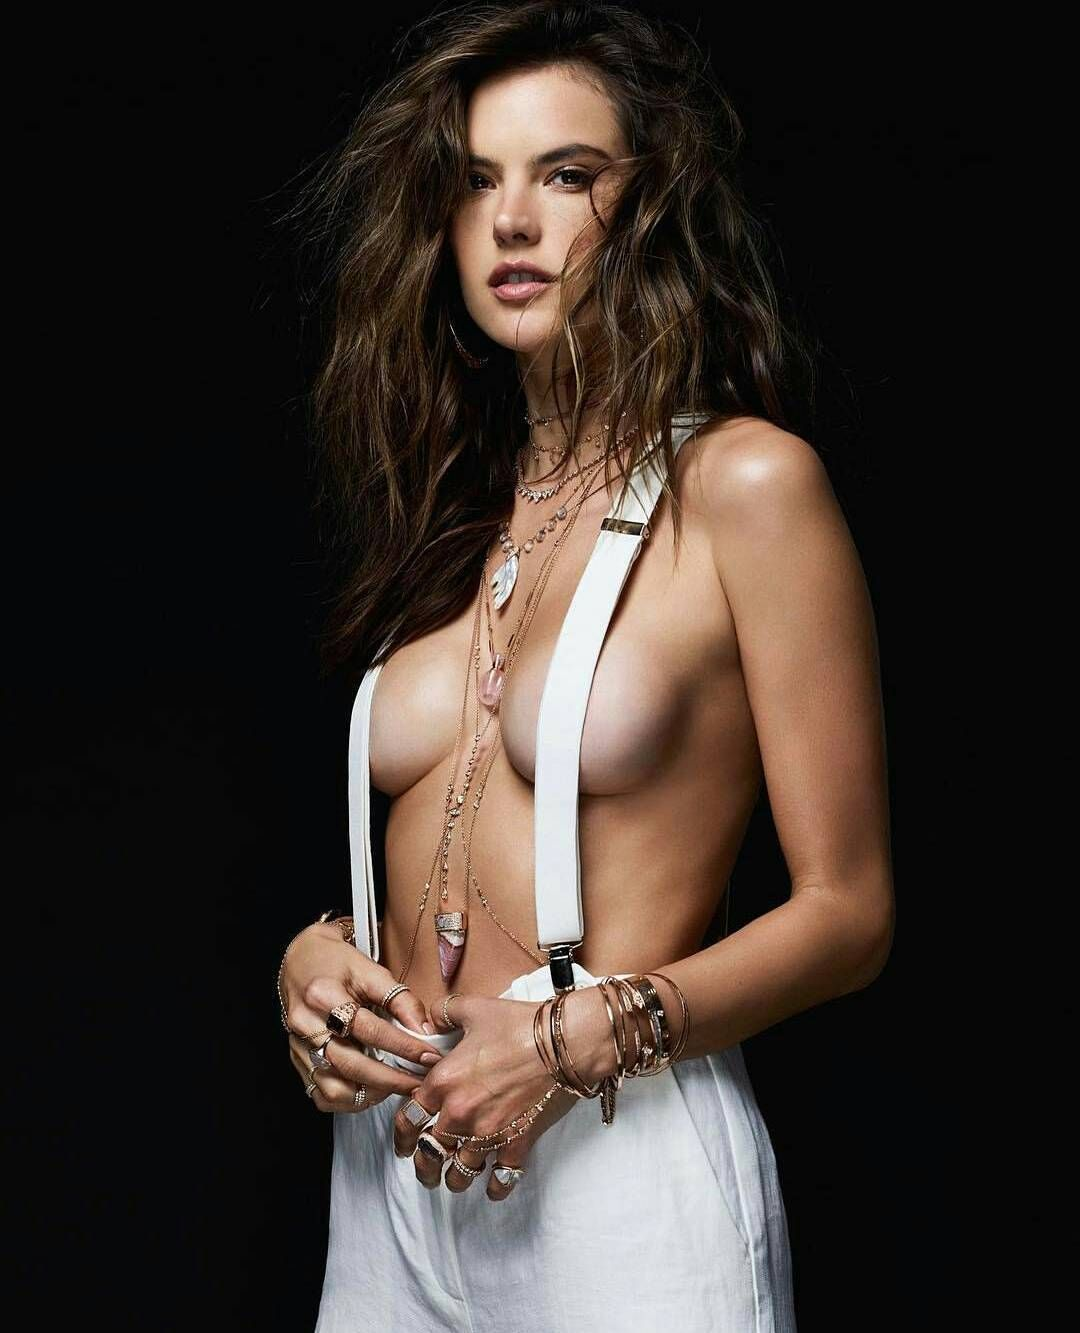 Forum on this topic: Kristen Stewart Caught In The Act Cheating Again, alessandra-ambrosio-sexy-67-photos/